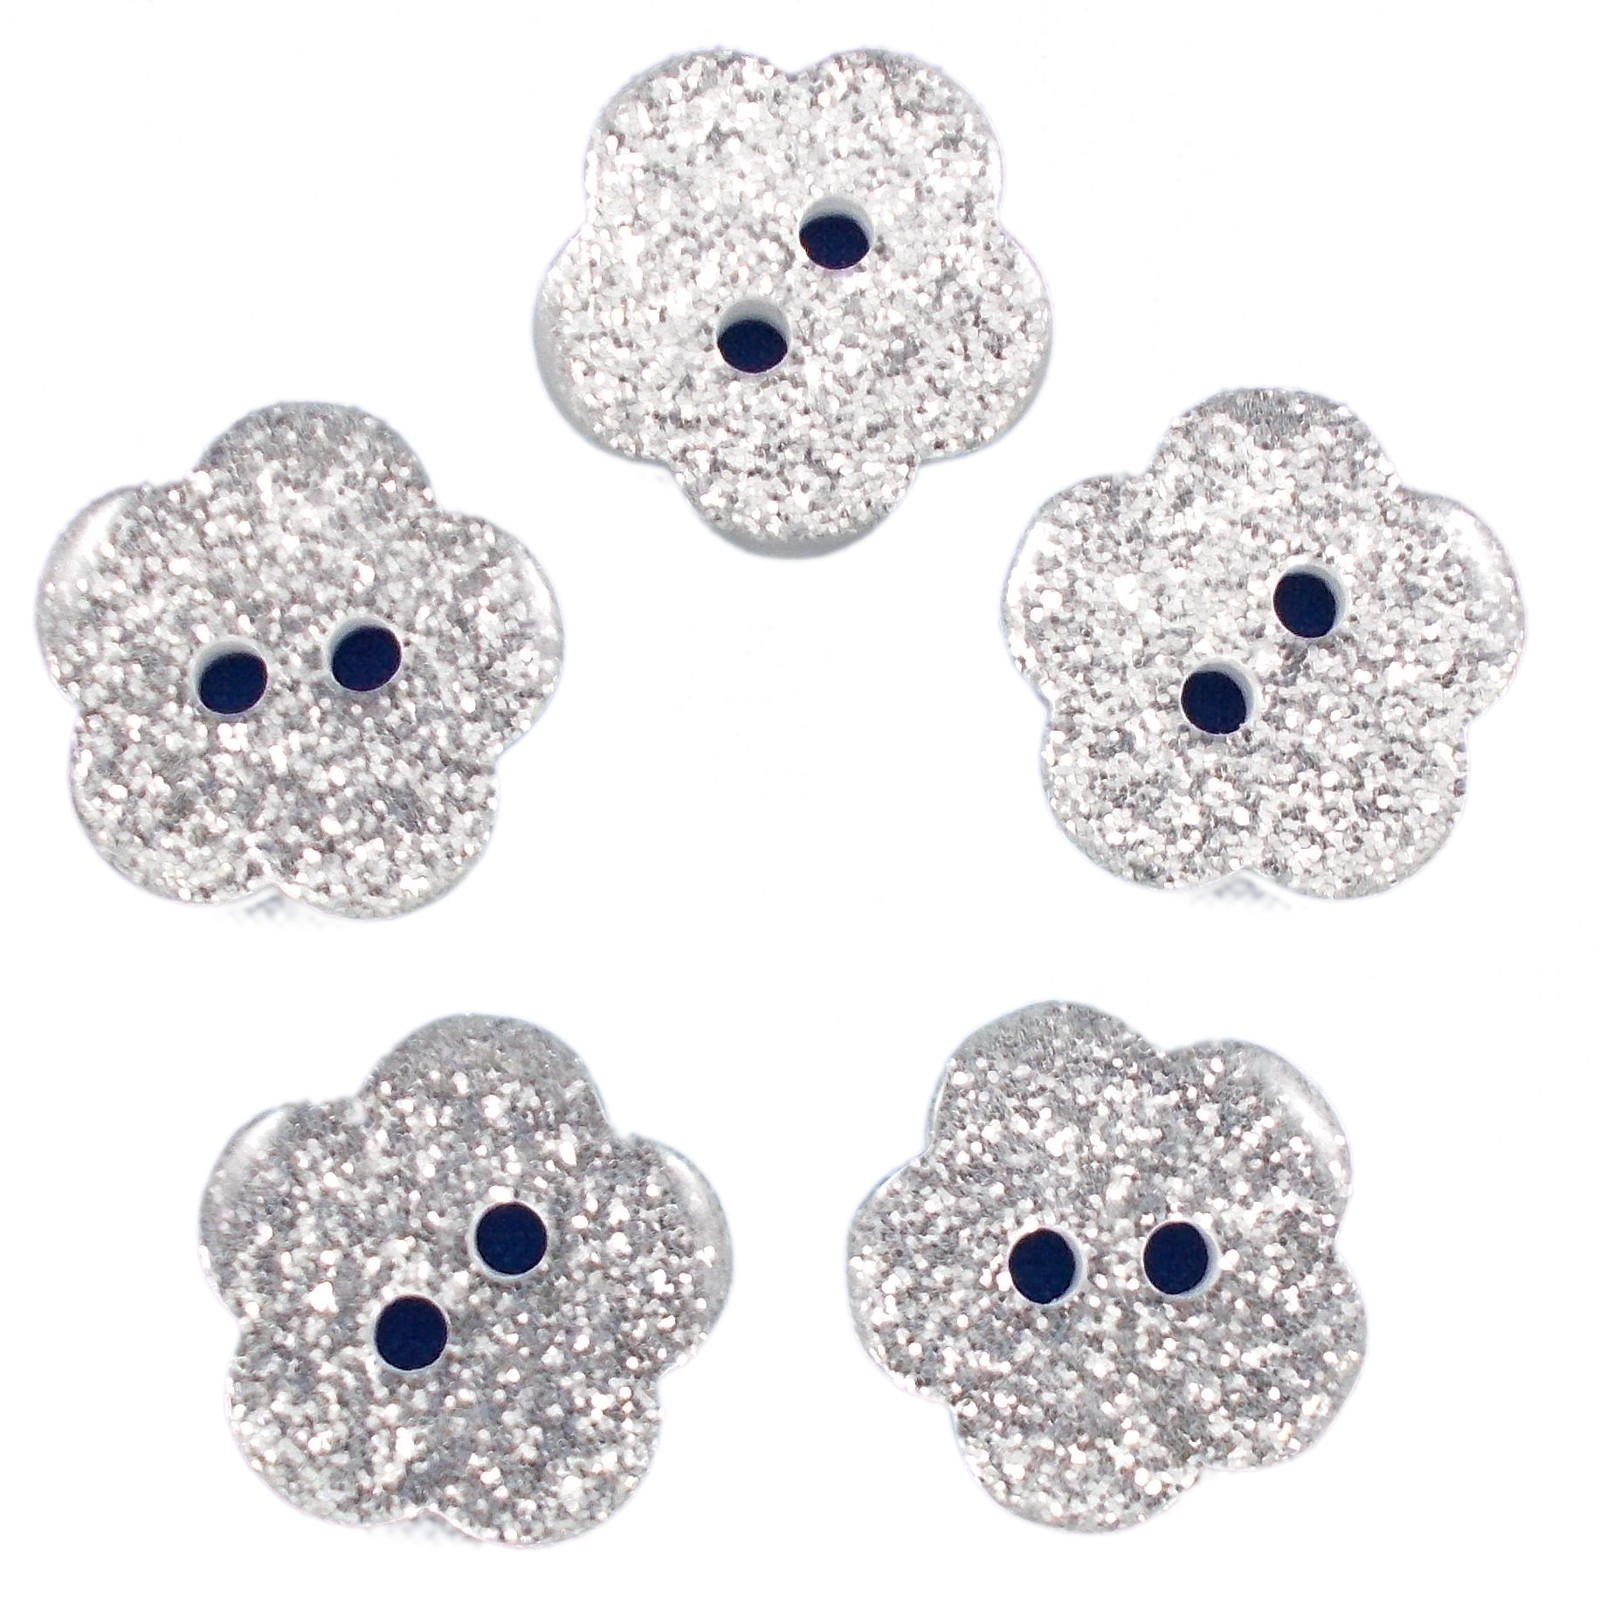 Colour Glitter Flower Shape Buttons 9mm Silver Pack of 5